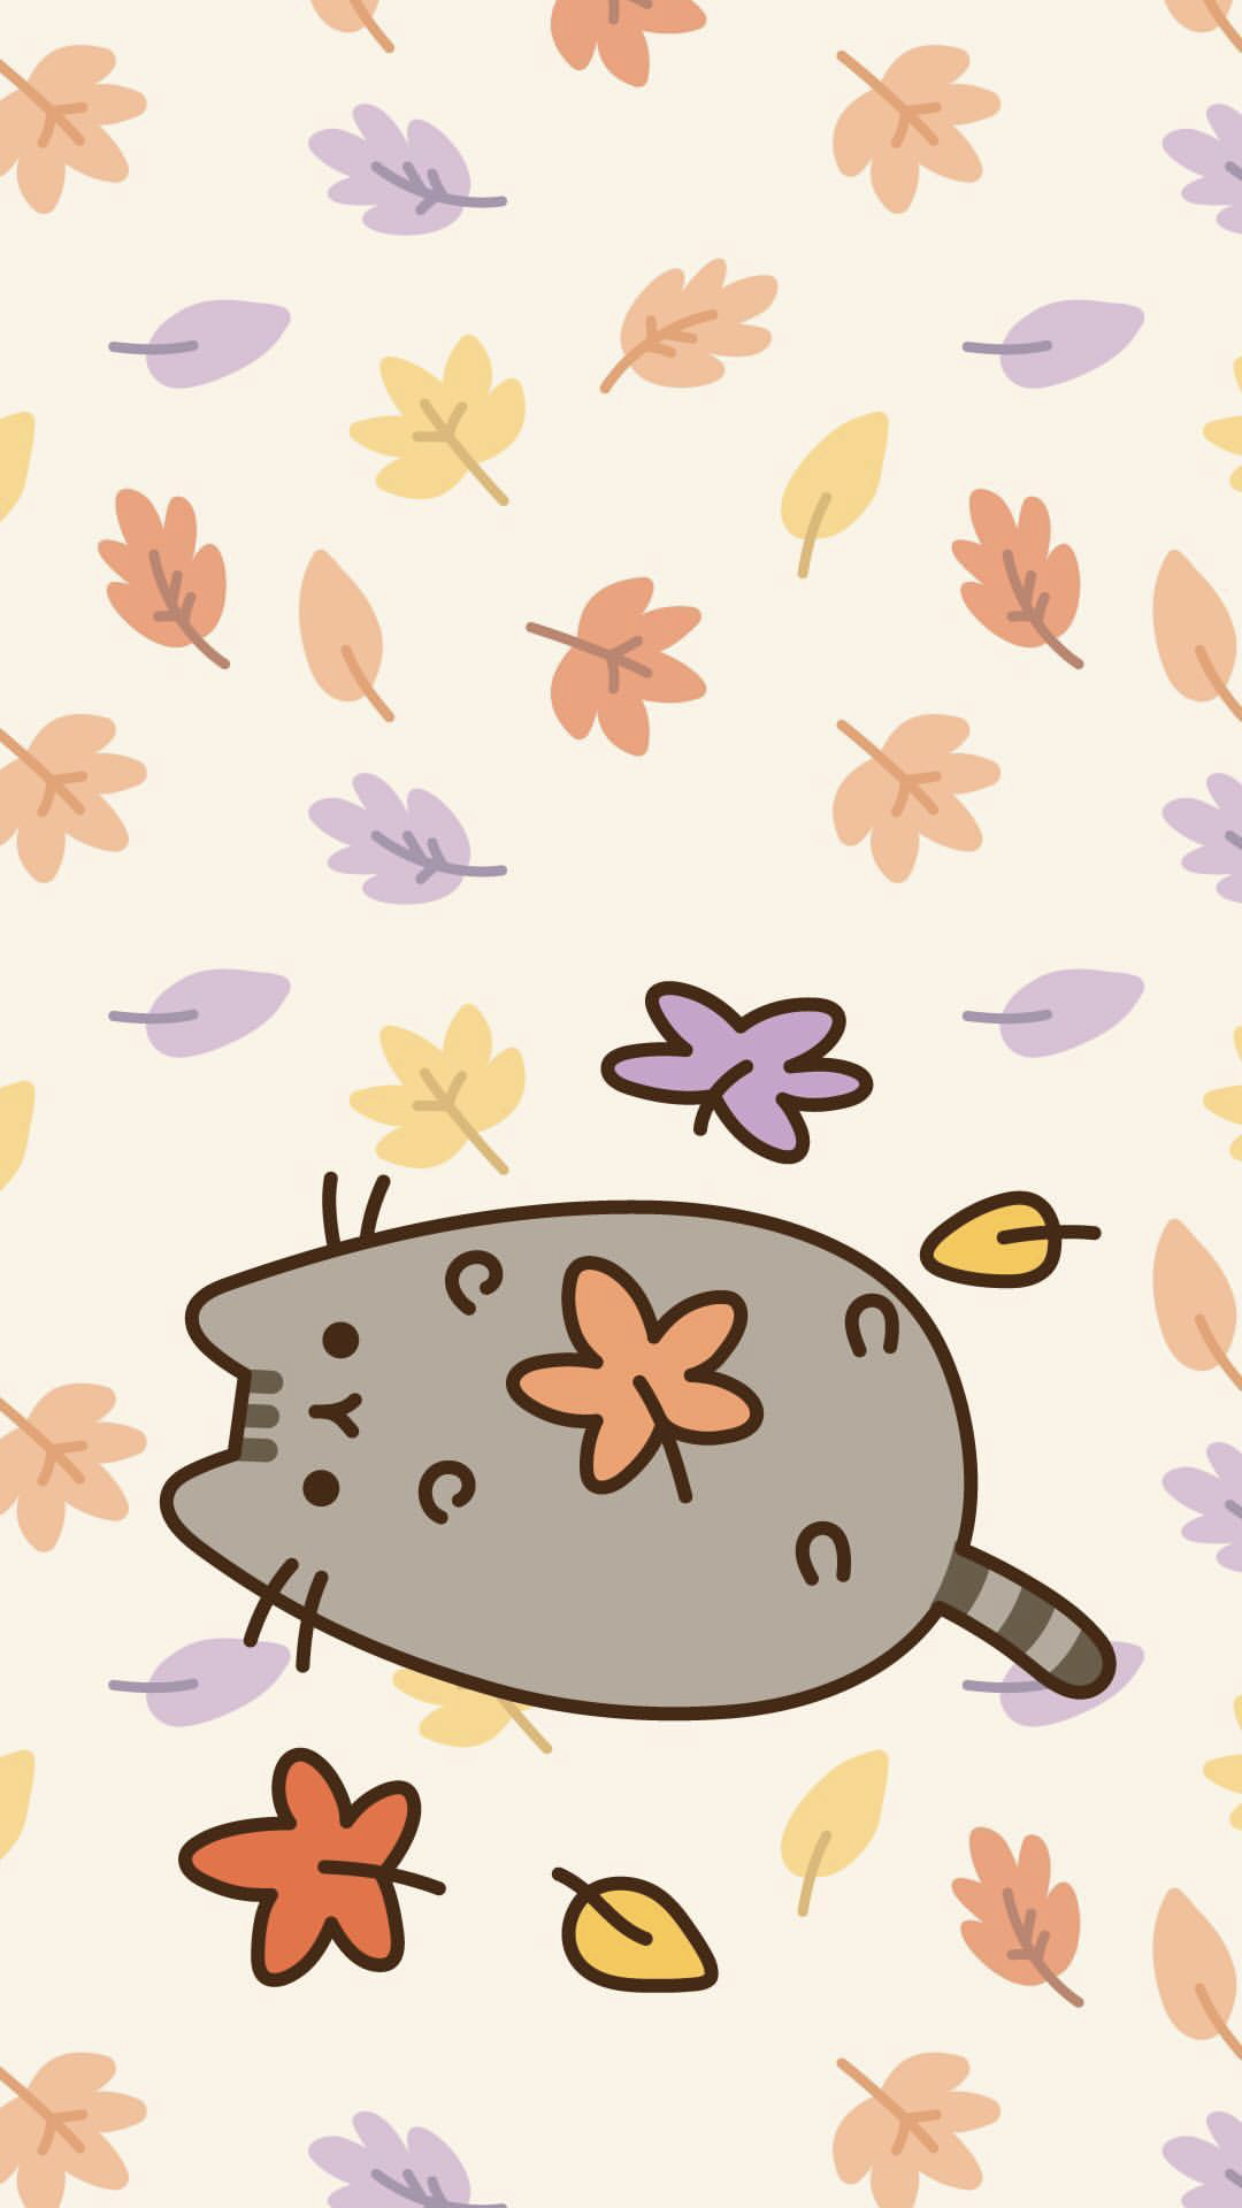 Pusheen The Cat Iphone Wallpaper Pusheen Cute Cat Wallpaper Fall Wallpaper